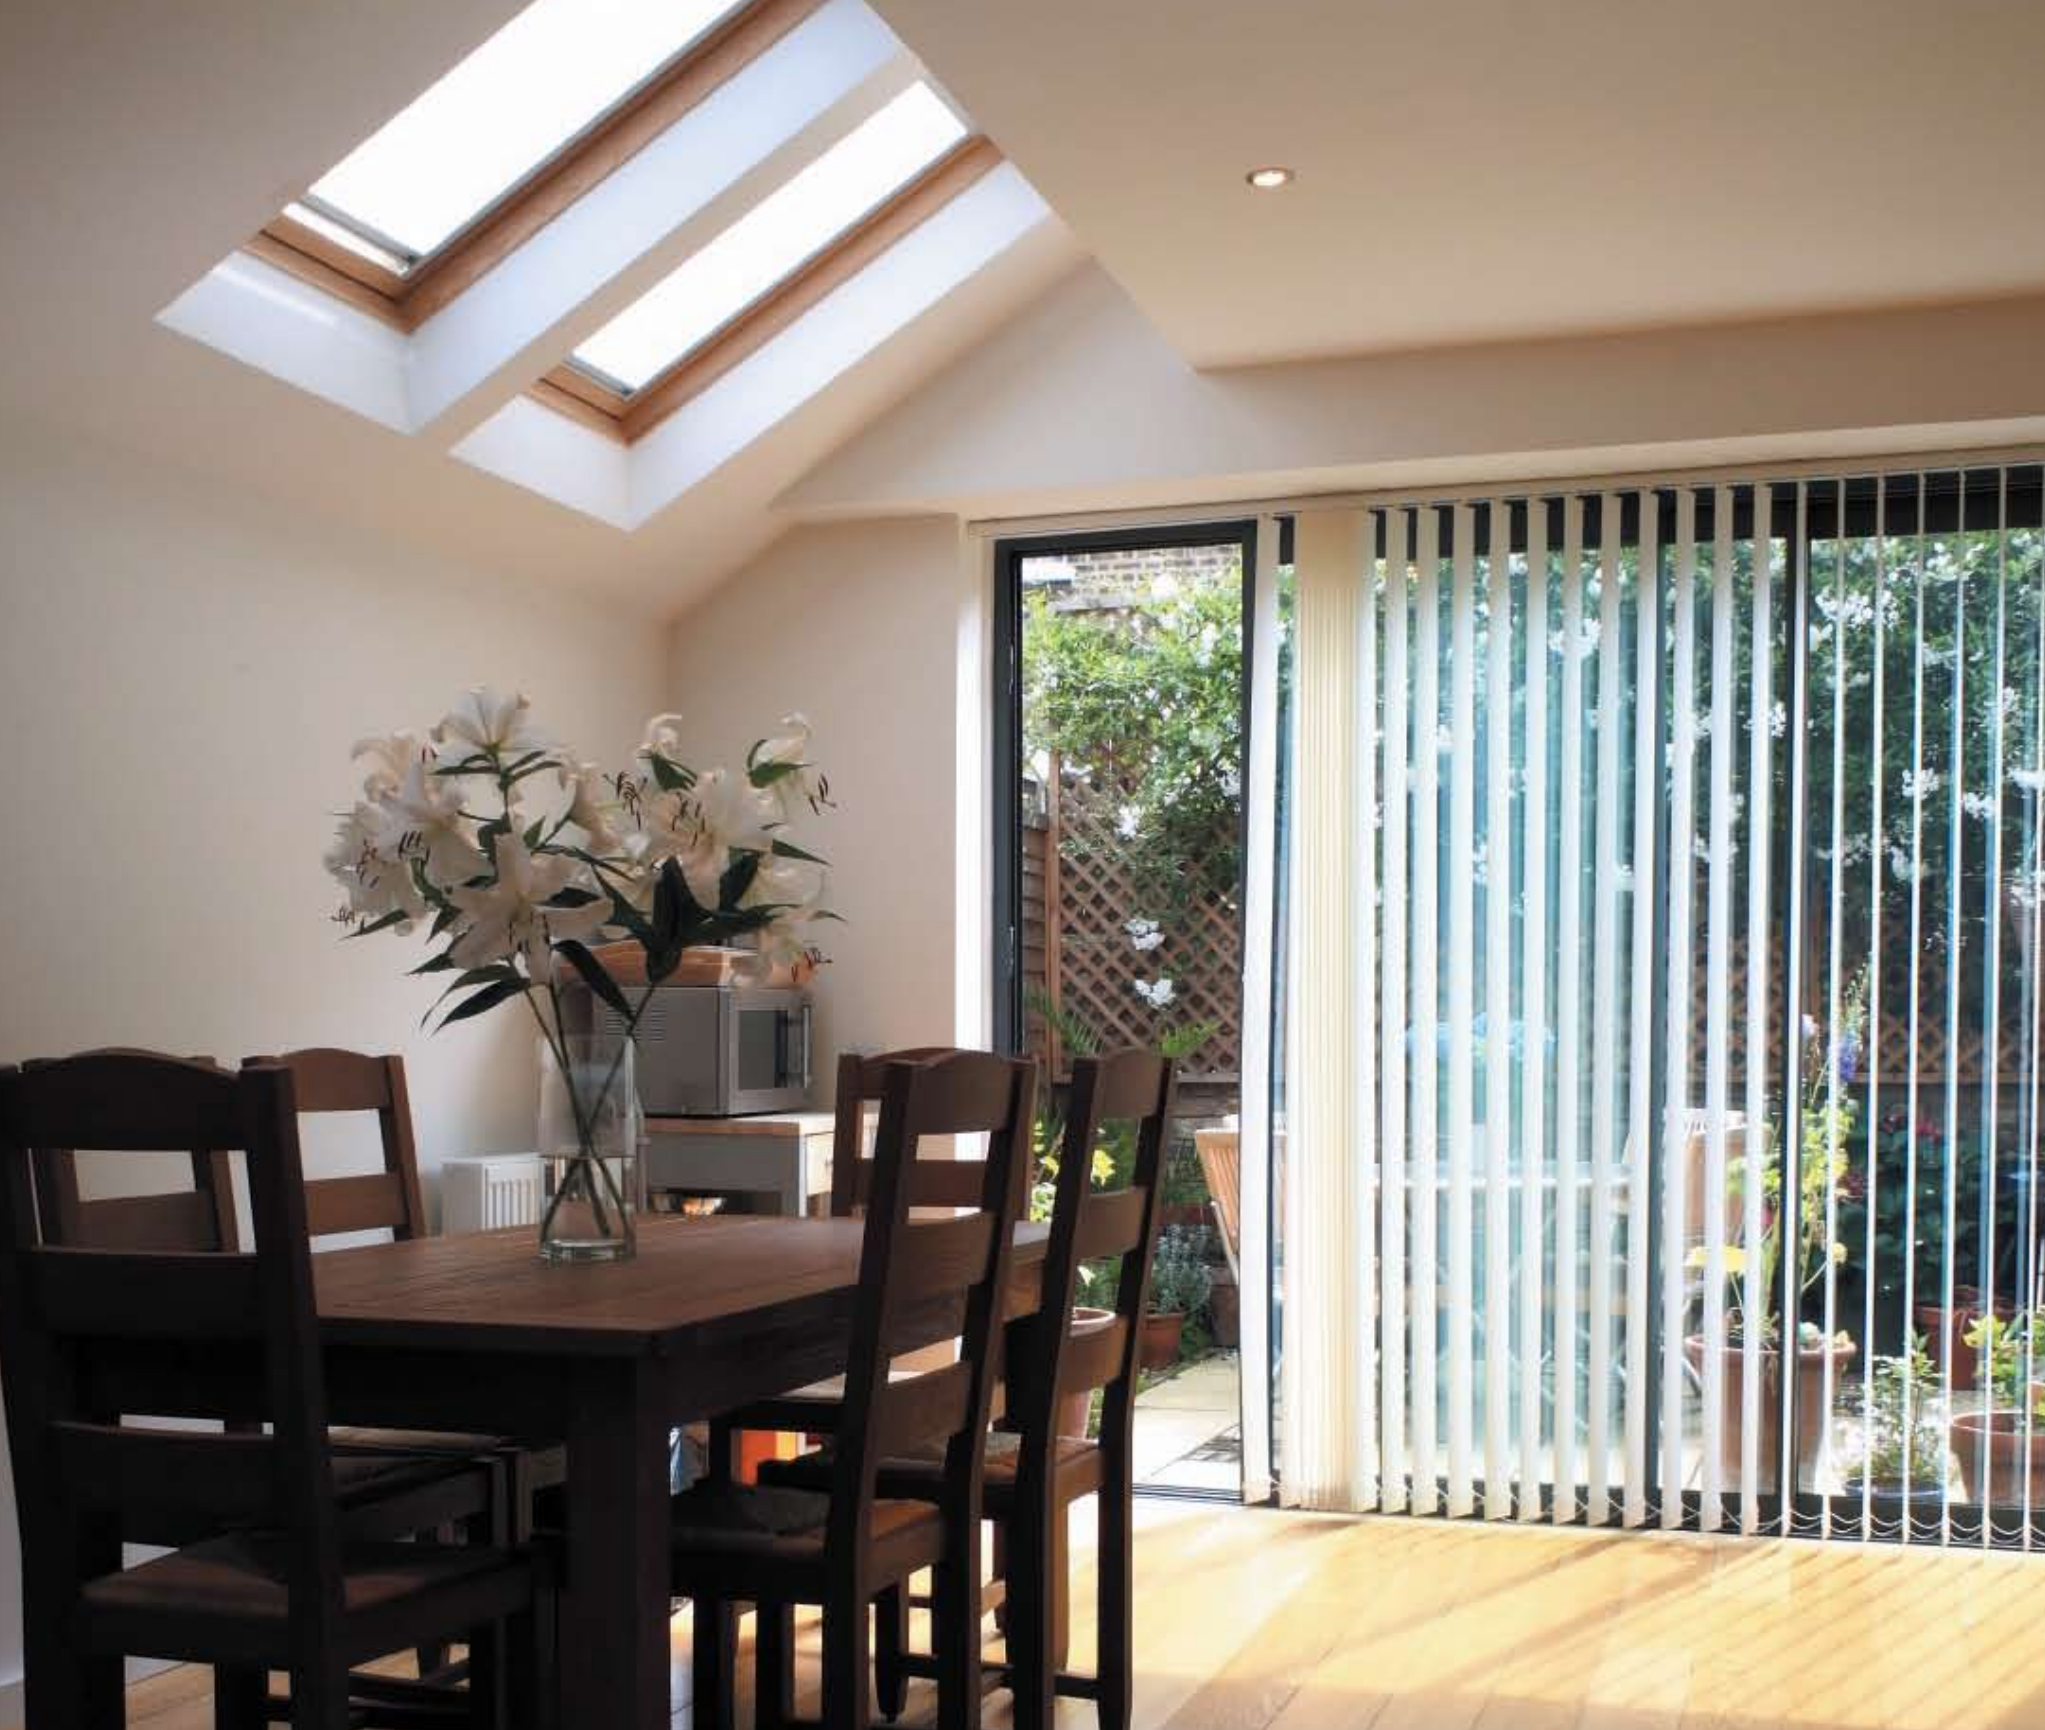 Sliding Doors - At Oakwood Windows we are proud to supply and install high specification Notus and Sash range of aluminium and UPVC sliding doors which can be designed specifically for your home.Our doors combine sleek design with the highest quality of security, energy efficiency and finish. Further personalise your doors by selecting from a wide range of single or dual colour variations and unique metallic finishes as well as multiple track options.If you would like to book a no obligation home survey please call our showroom team who will be more than happy to discuss your enquiry: 020 8361 0128.